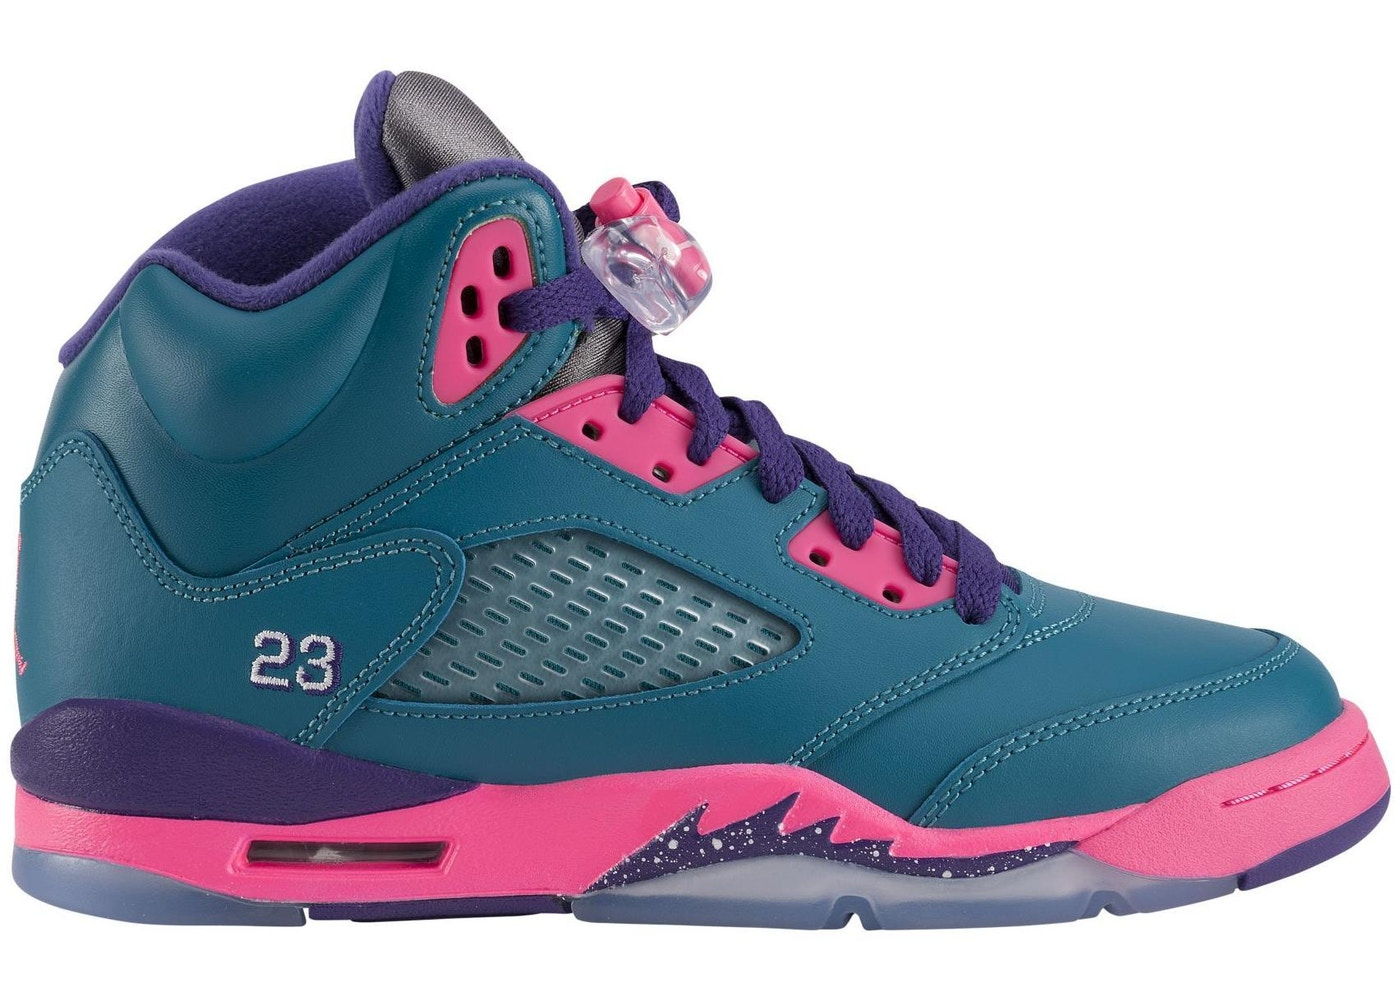 c5196099db42ed Sell. or Ask. Size  6.5Y. View All Bids. Jordan 5 Retro Tropical Teal (GS)